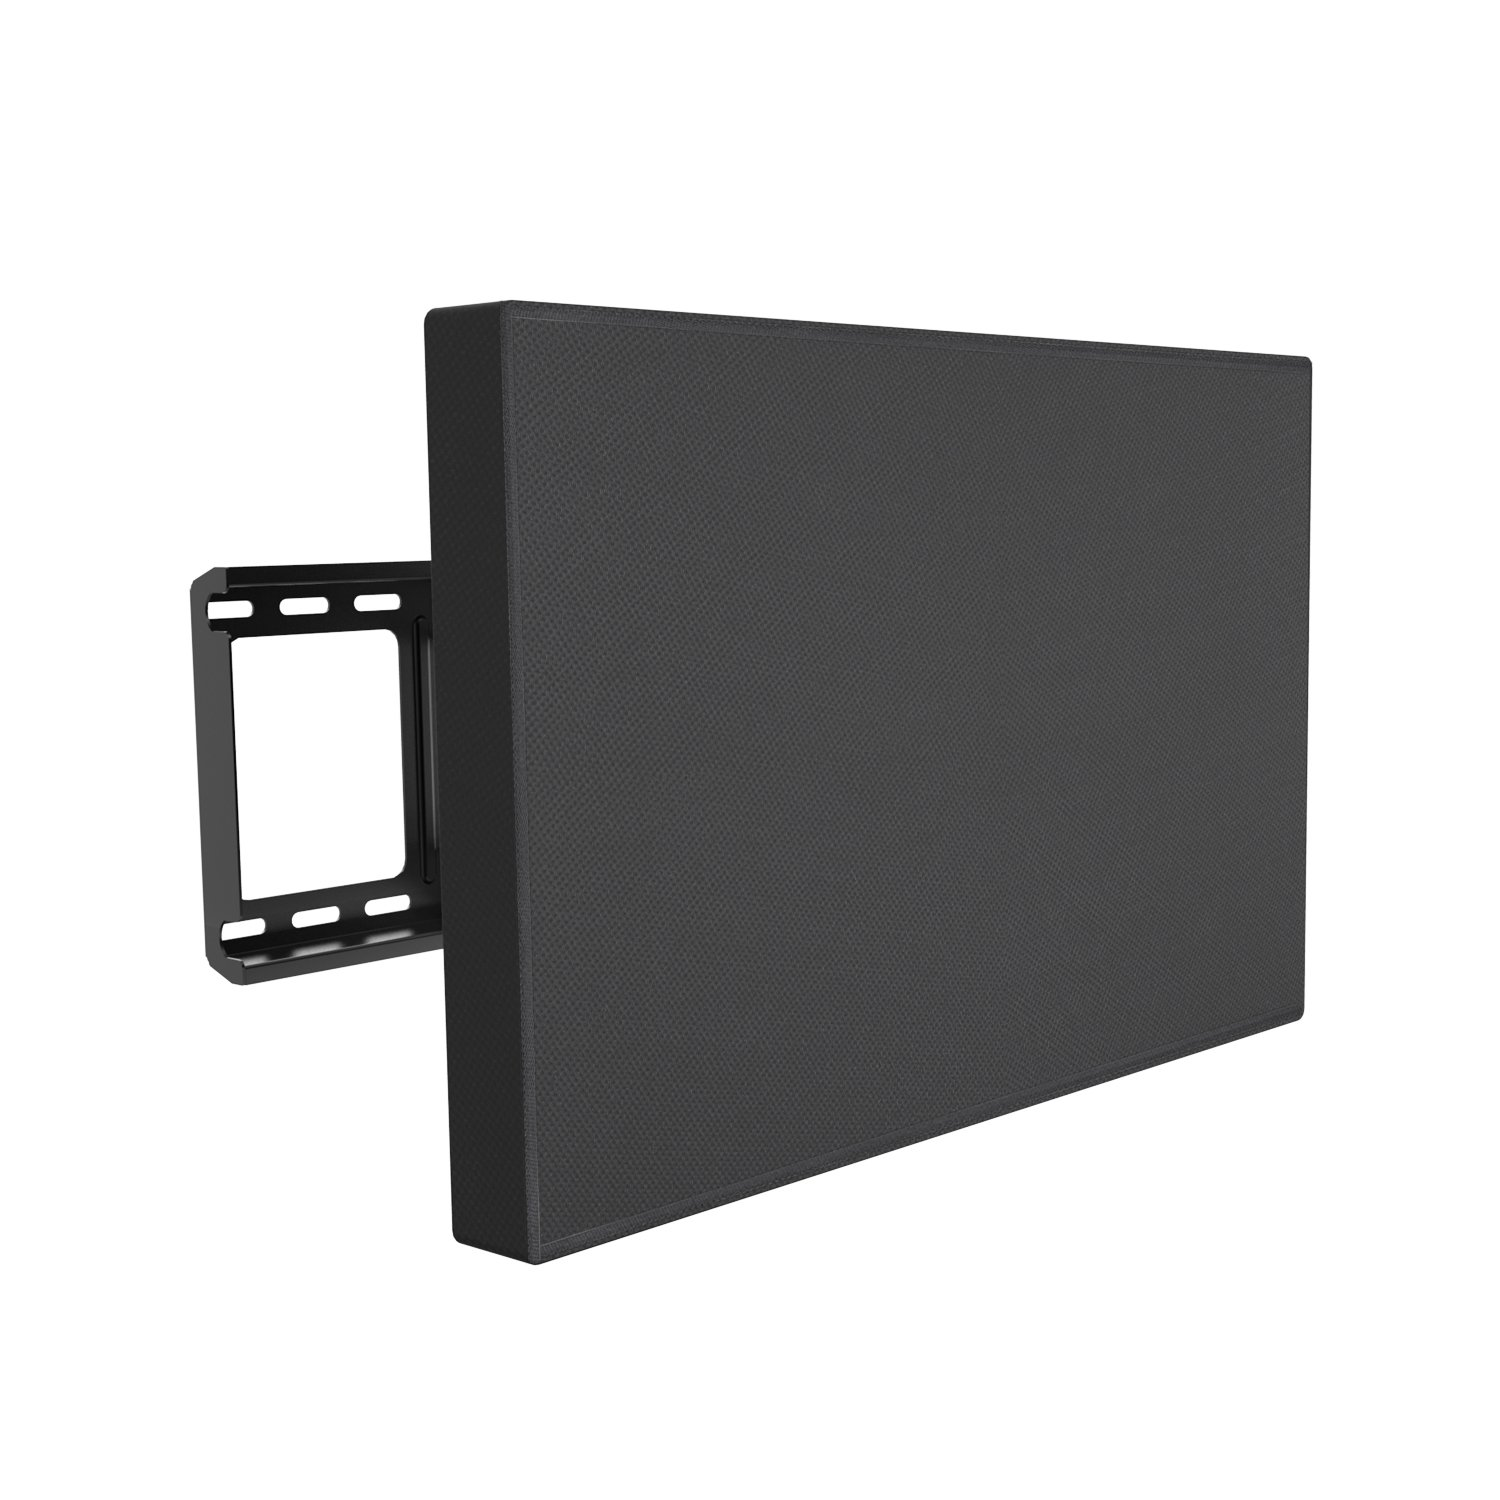 Outdoor TV Cover 55-58 inch Dust Waterproof Weatherproof Moving Enclosure for Outside, Storage, Rain, Sun, All Weather